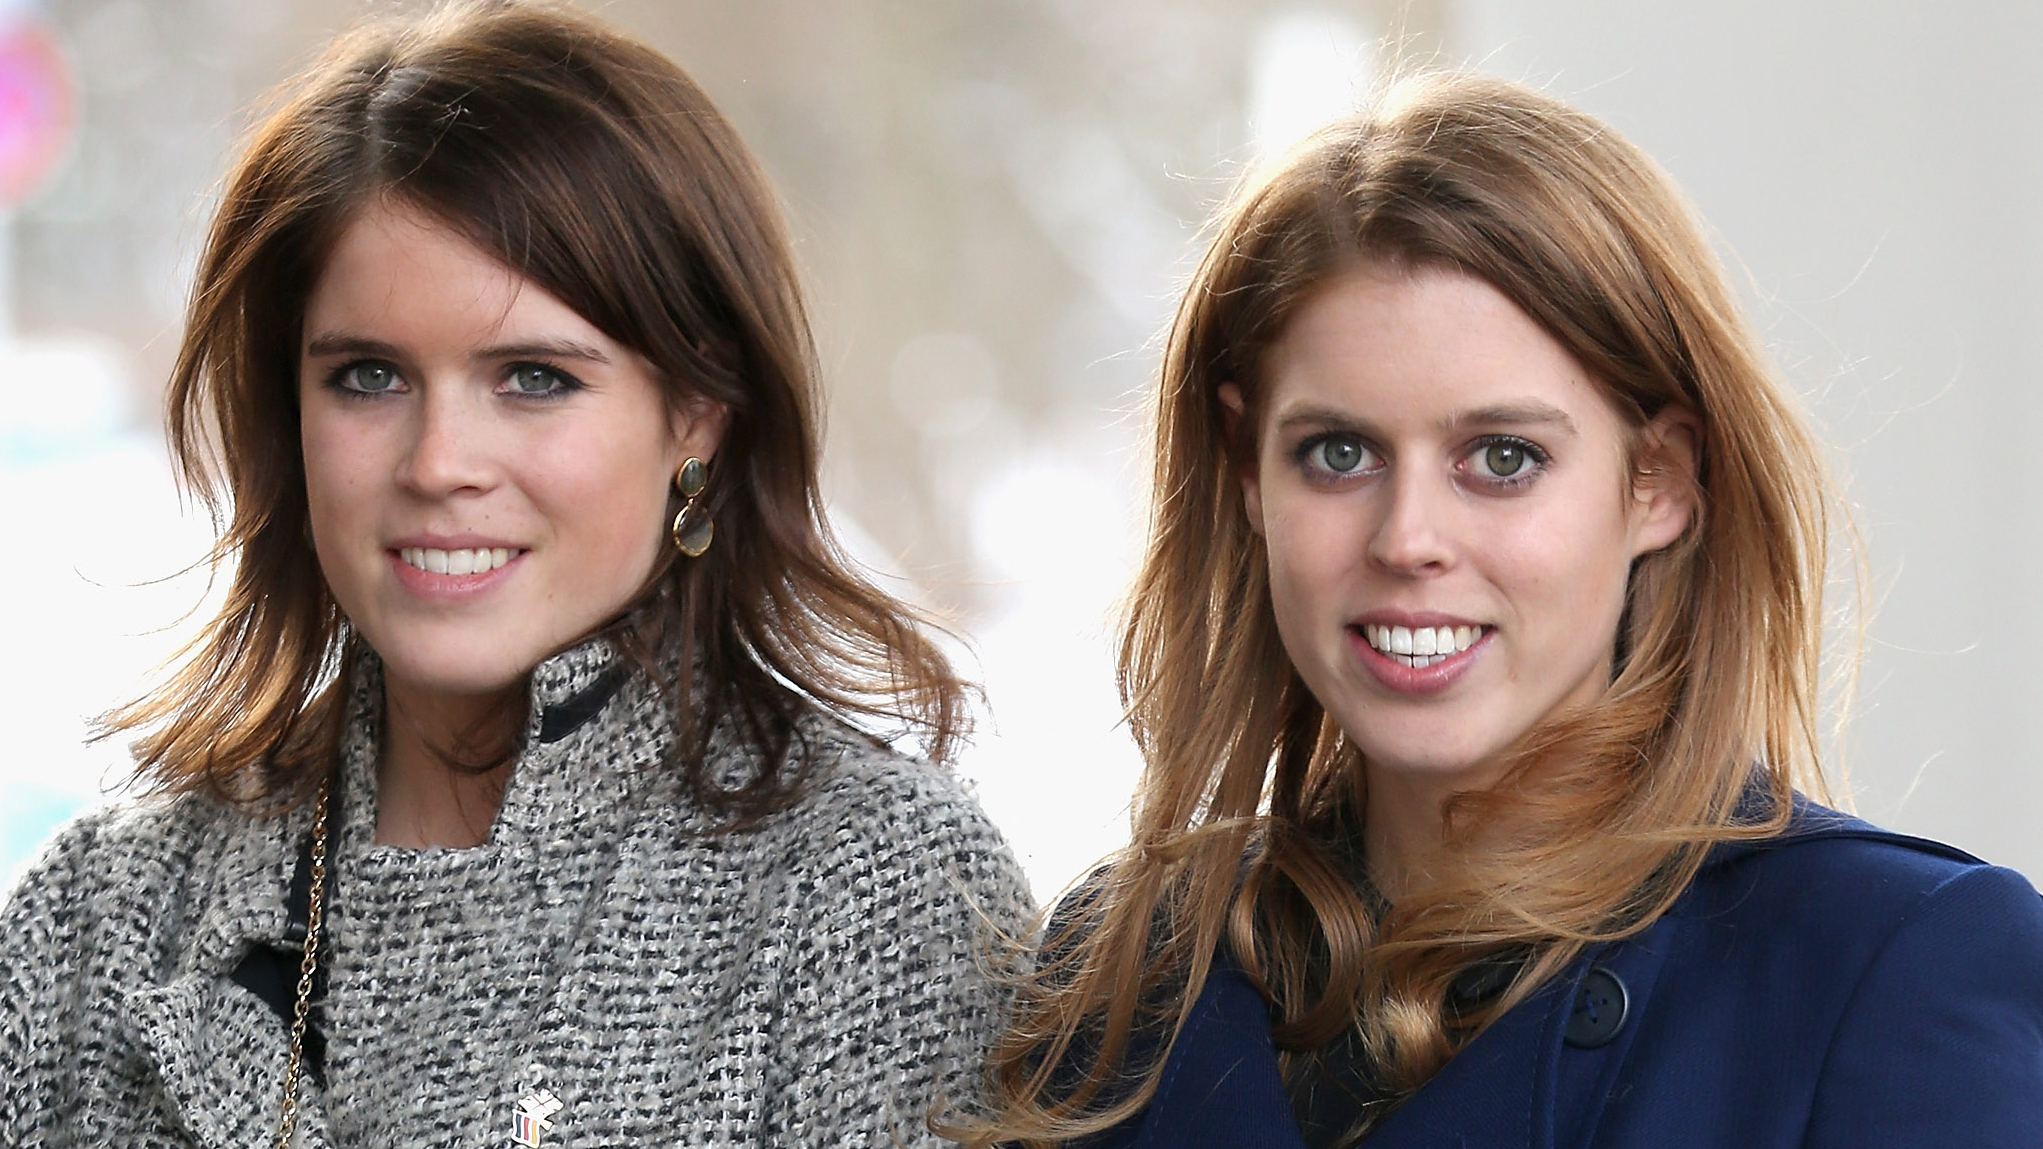 Princess Beatrice receives sweet birthday tribute from sister Princess Eugenie: